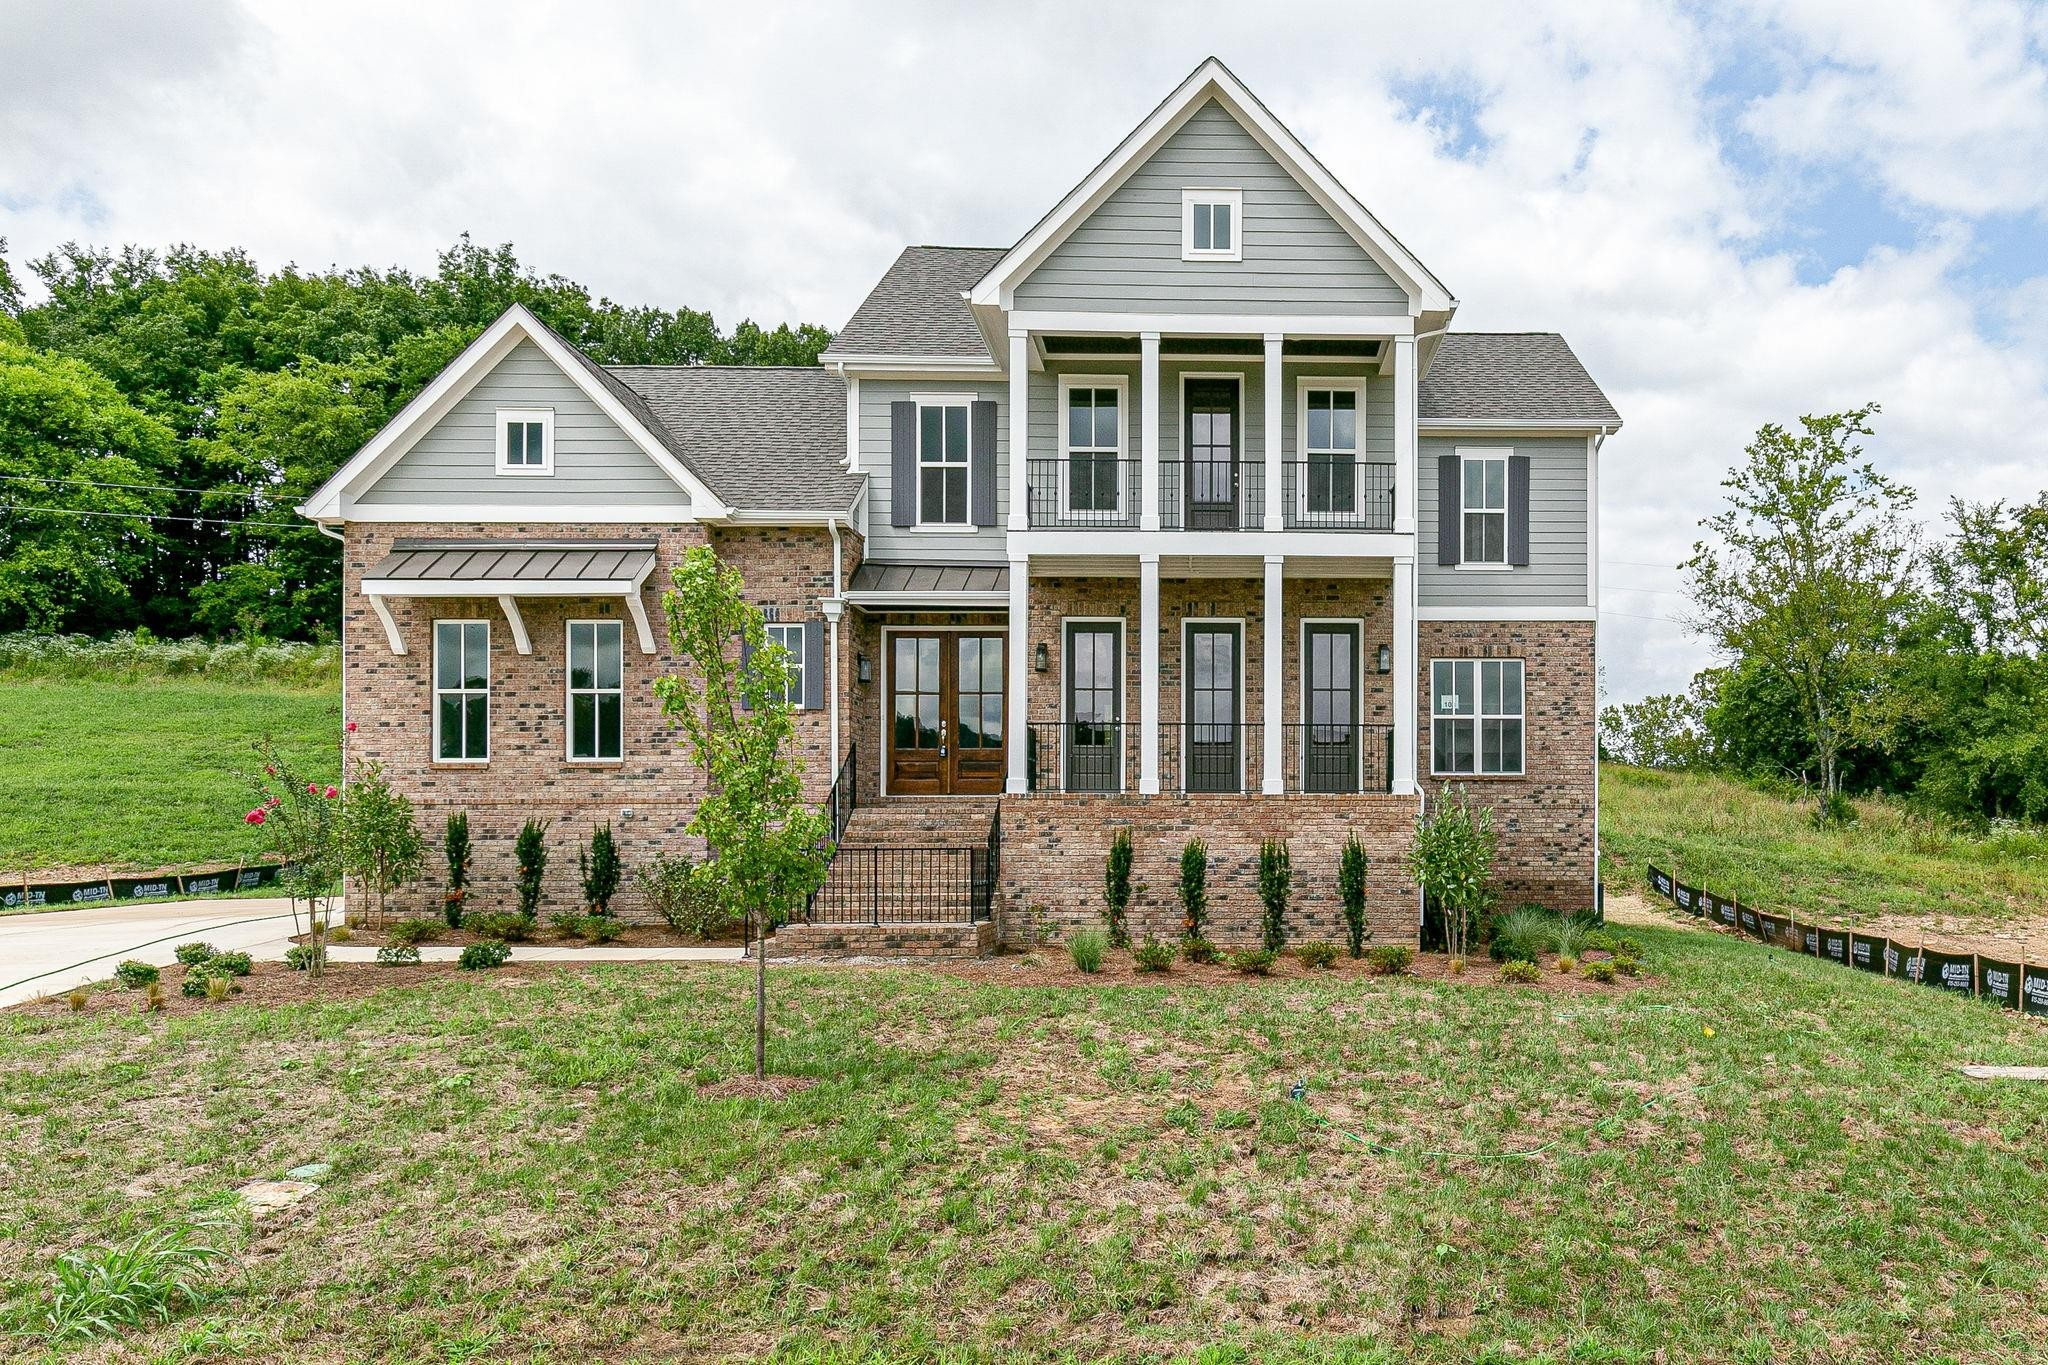 7009 Vineyard Valley Dr (103), College Grove, TN 37046 - College Grove, TN real estate listing